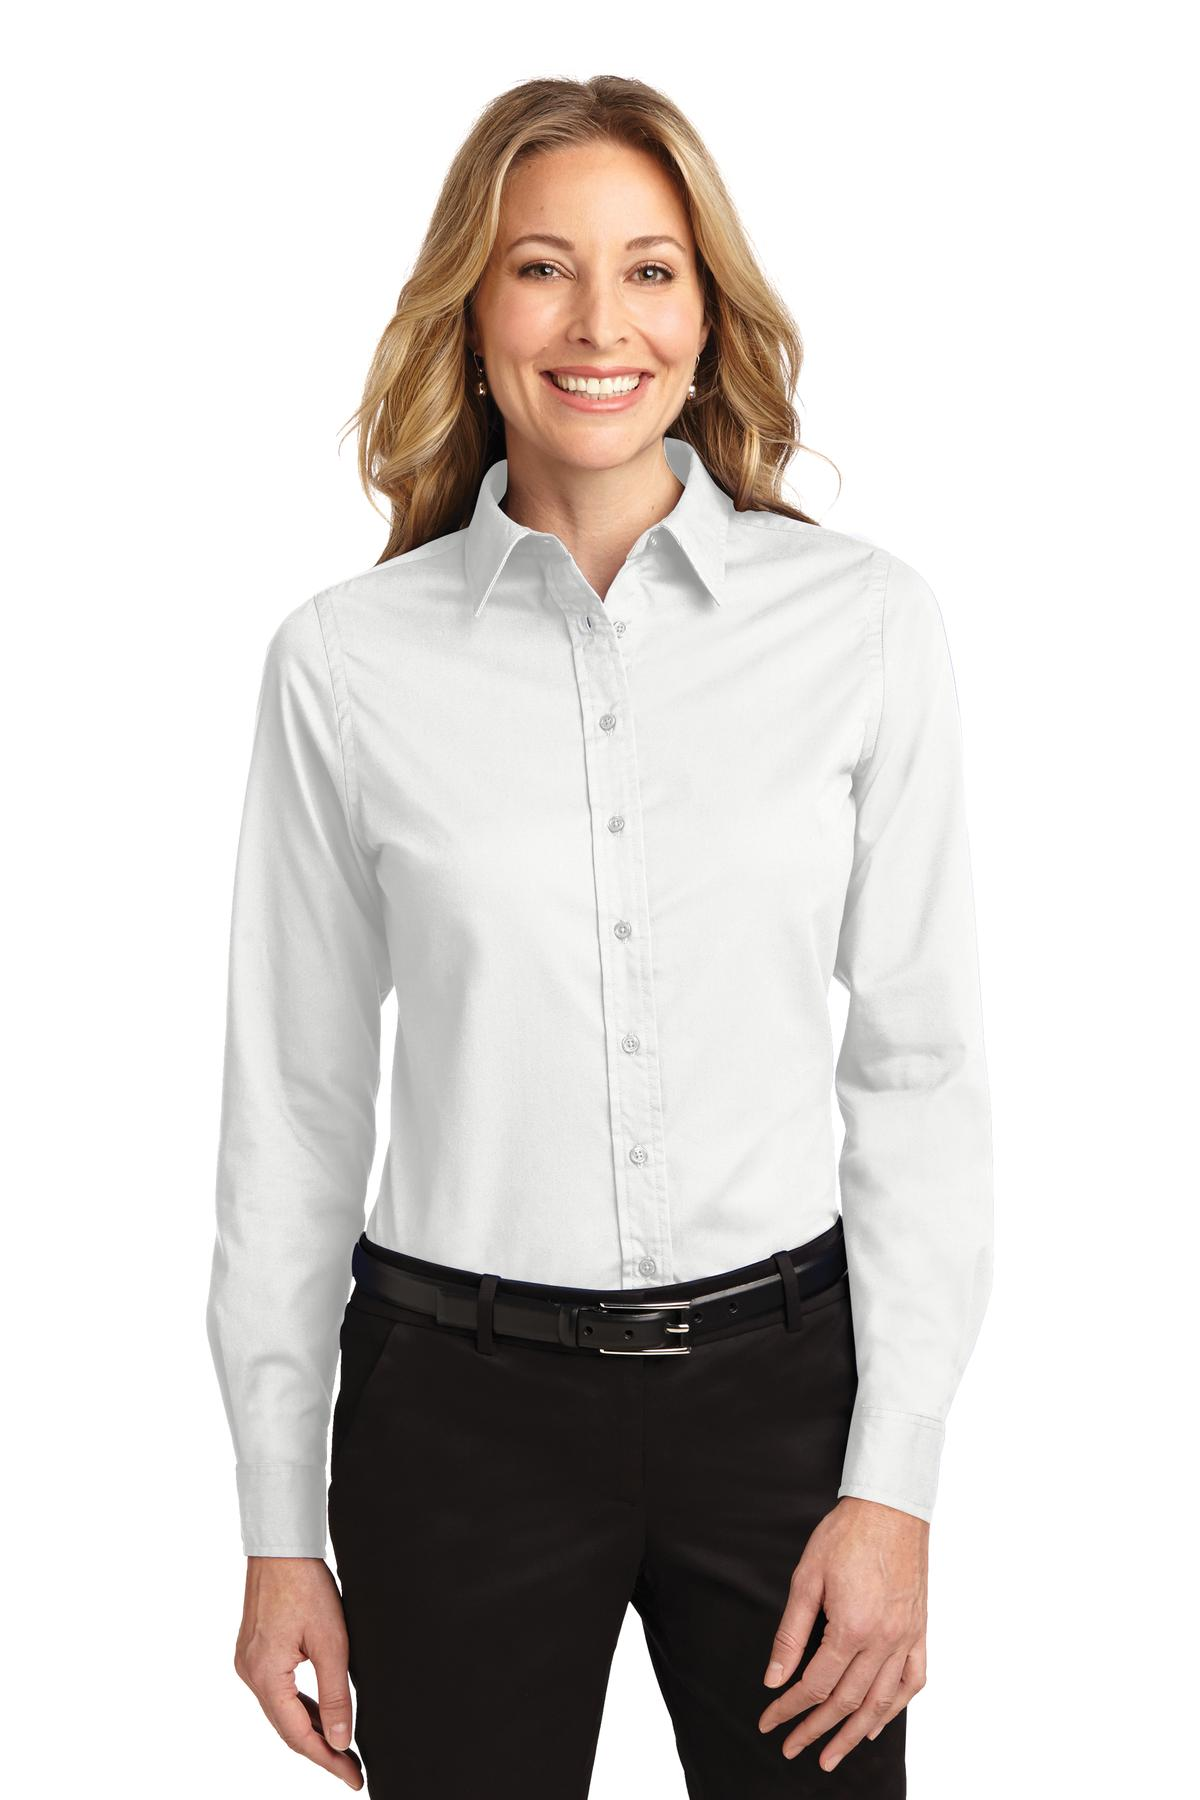 White / Light Stone Port Authority Ladies Long Sleeve Easy Care Shirt.